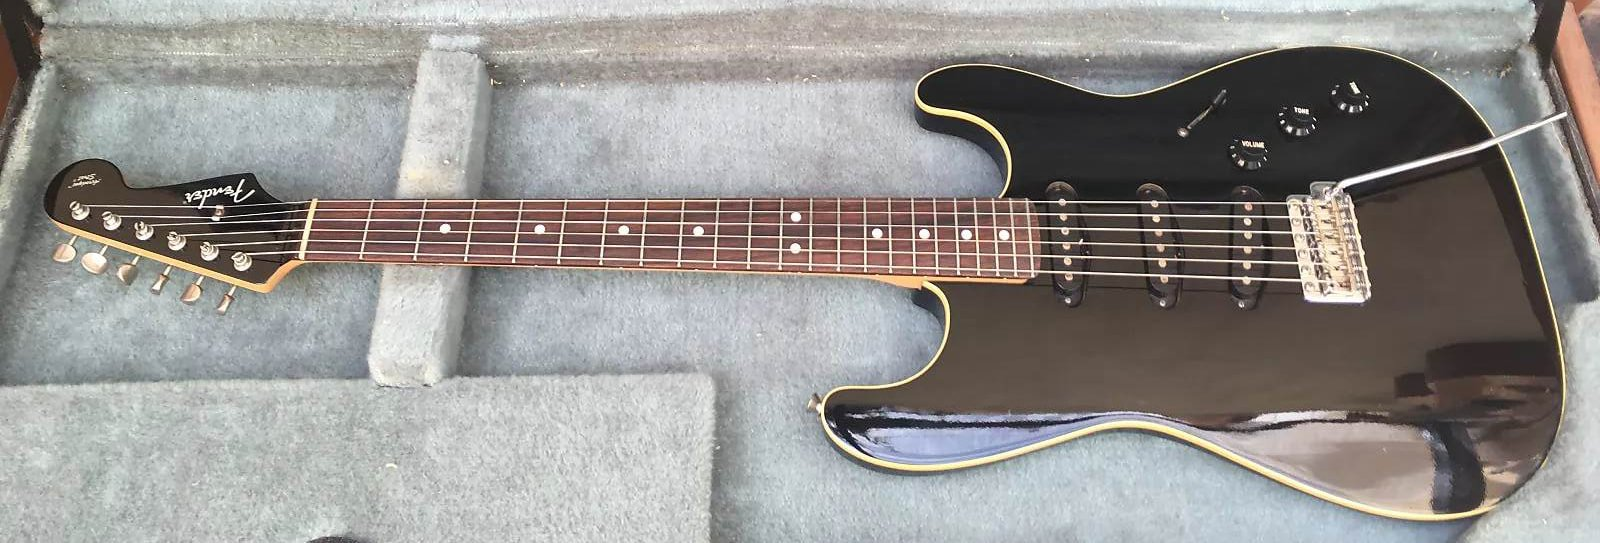 Aerodyne Stratocaster second model, without pickguard, Courtesy of Reverb